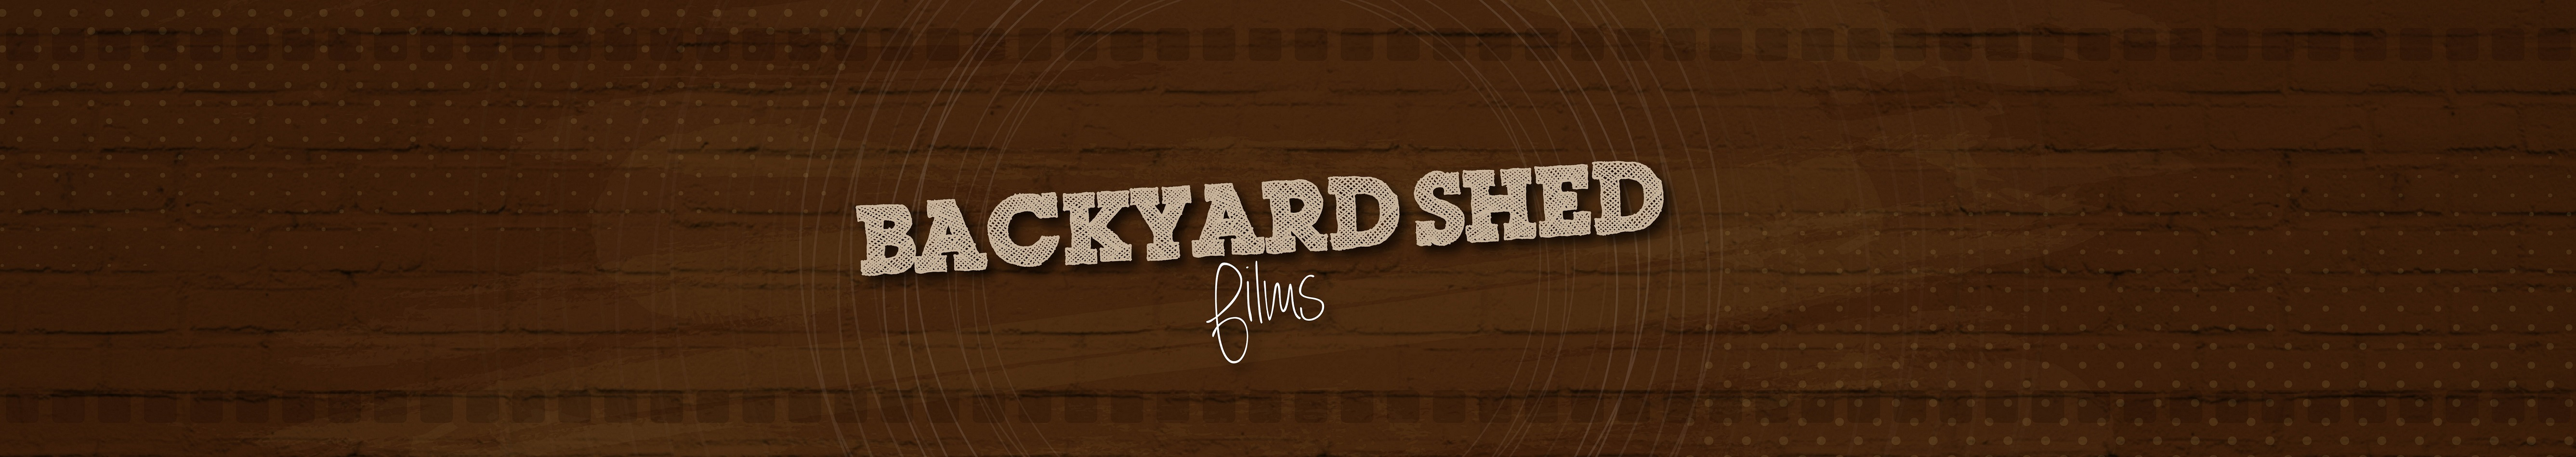 Homepage With Photo | Backyard Shed Films